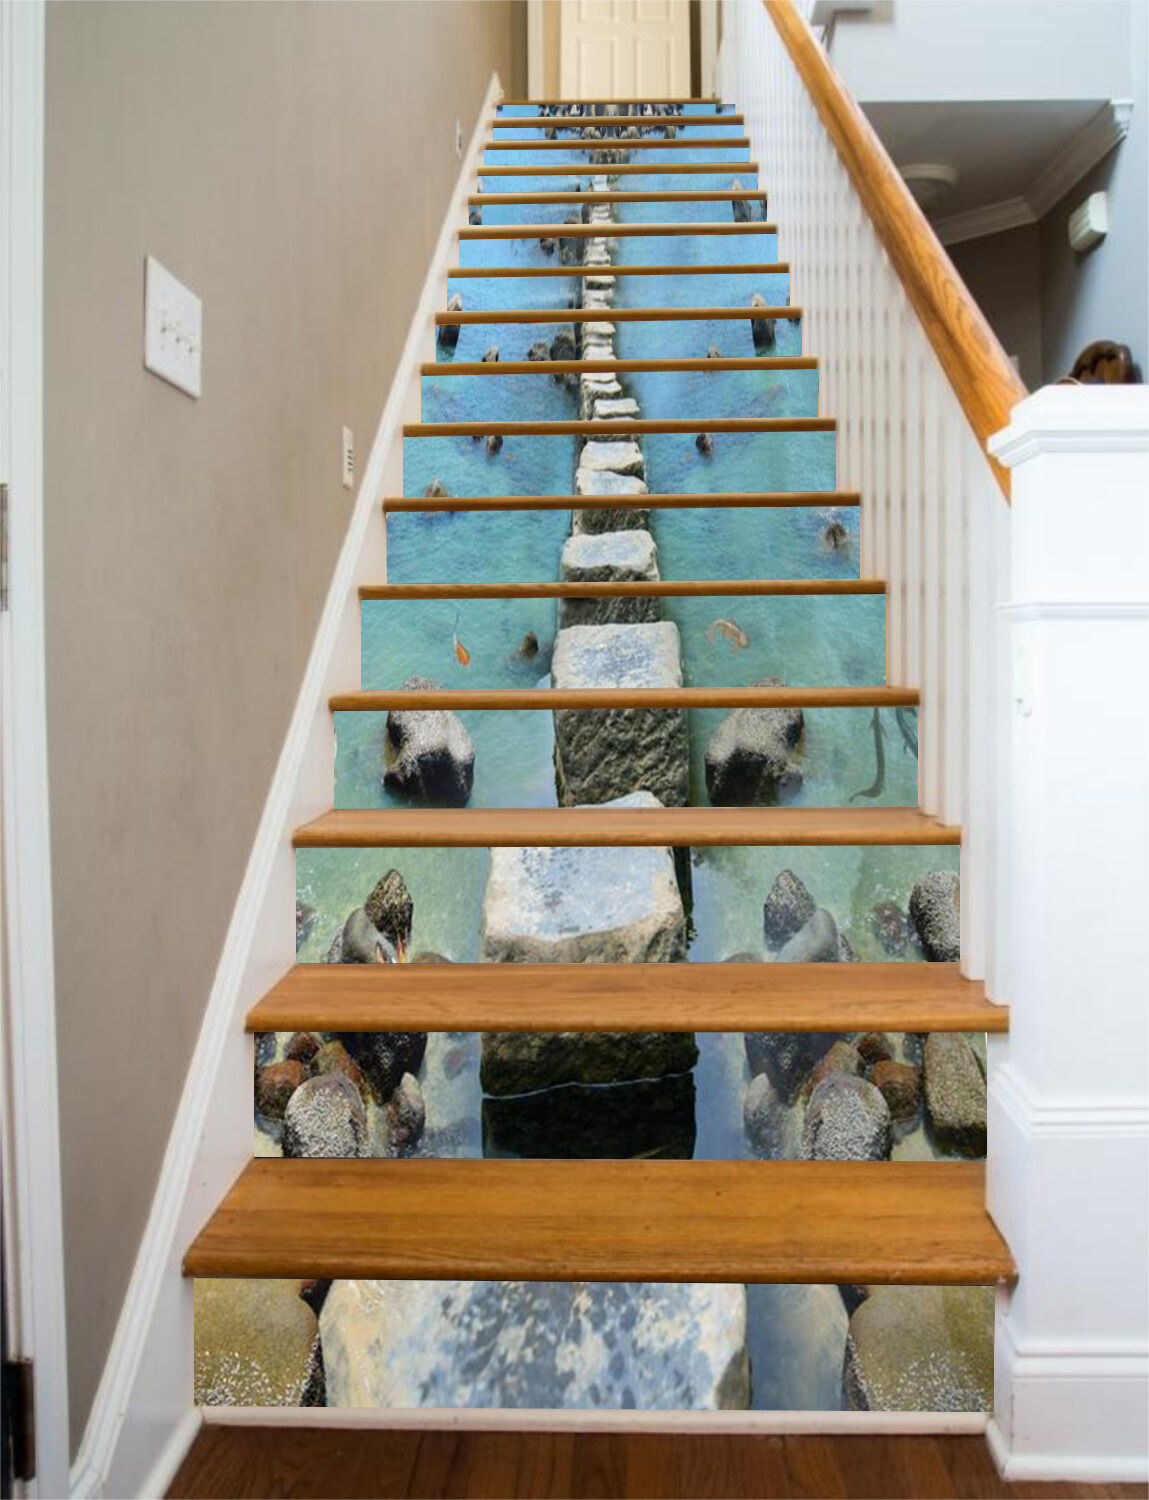 3D Many stones 23 Stair Risers Decoration Photo Mural Vinyl Decal Wallpaper AU